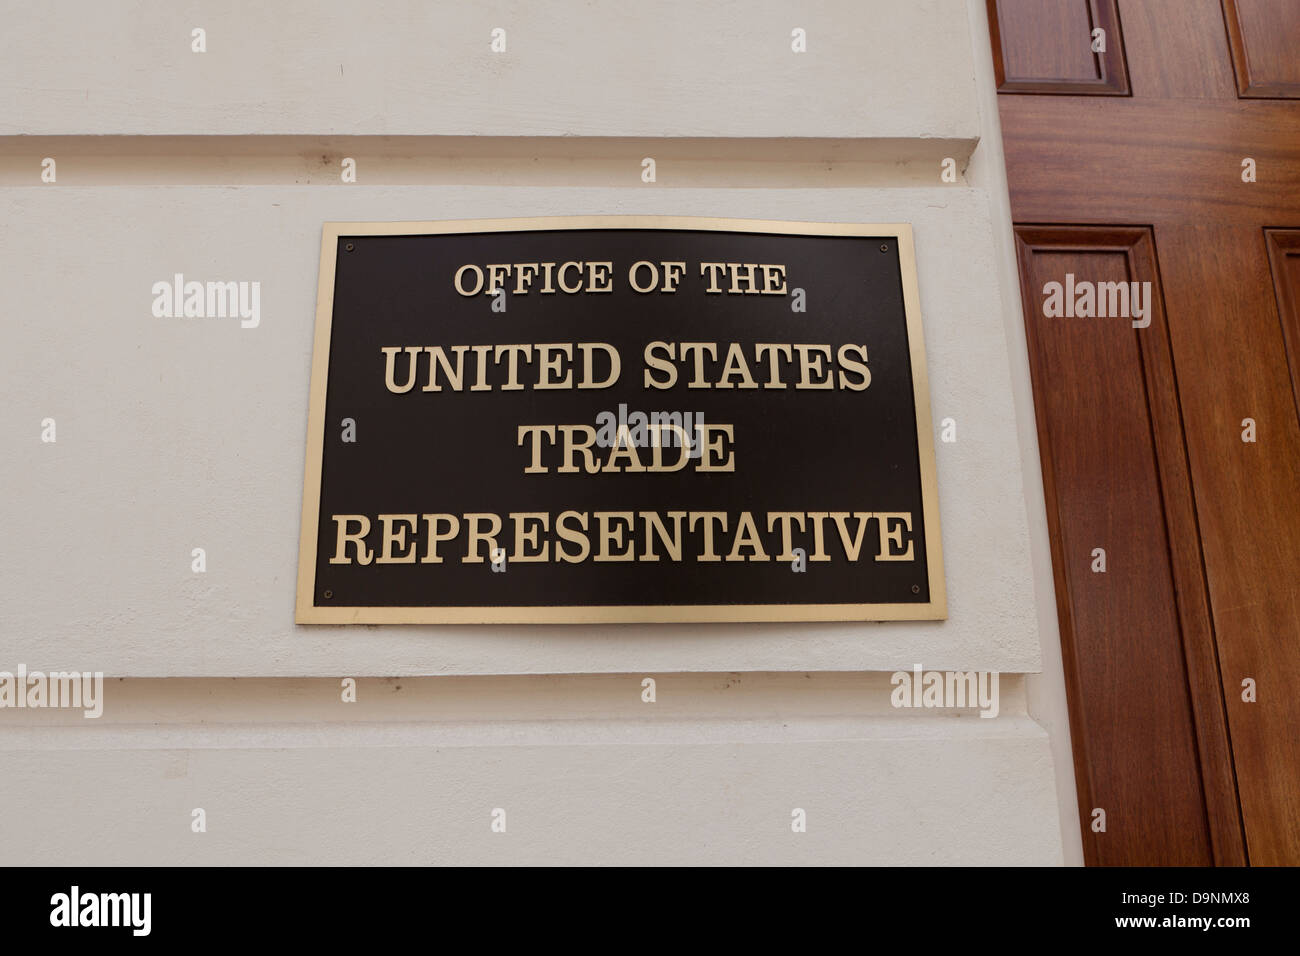 US Trade Representative office - Washington, DC USA - Stock Image